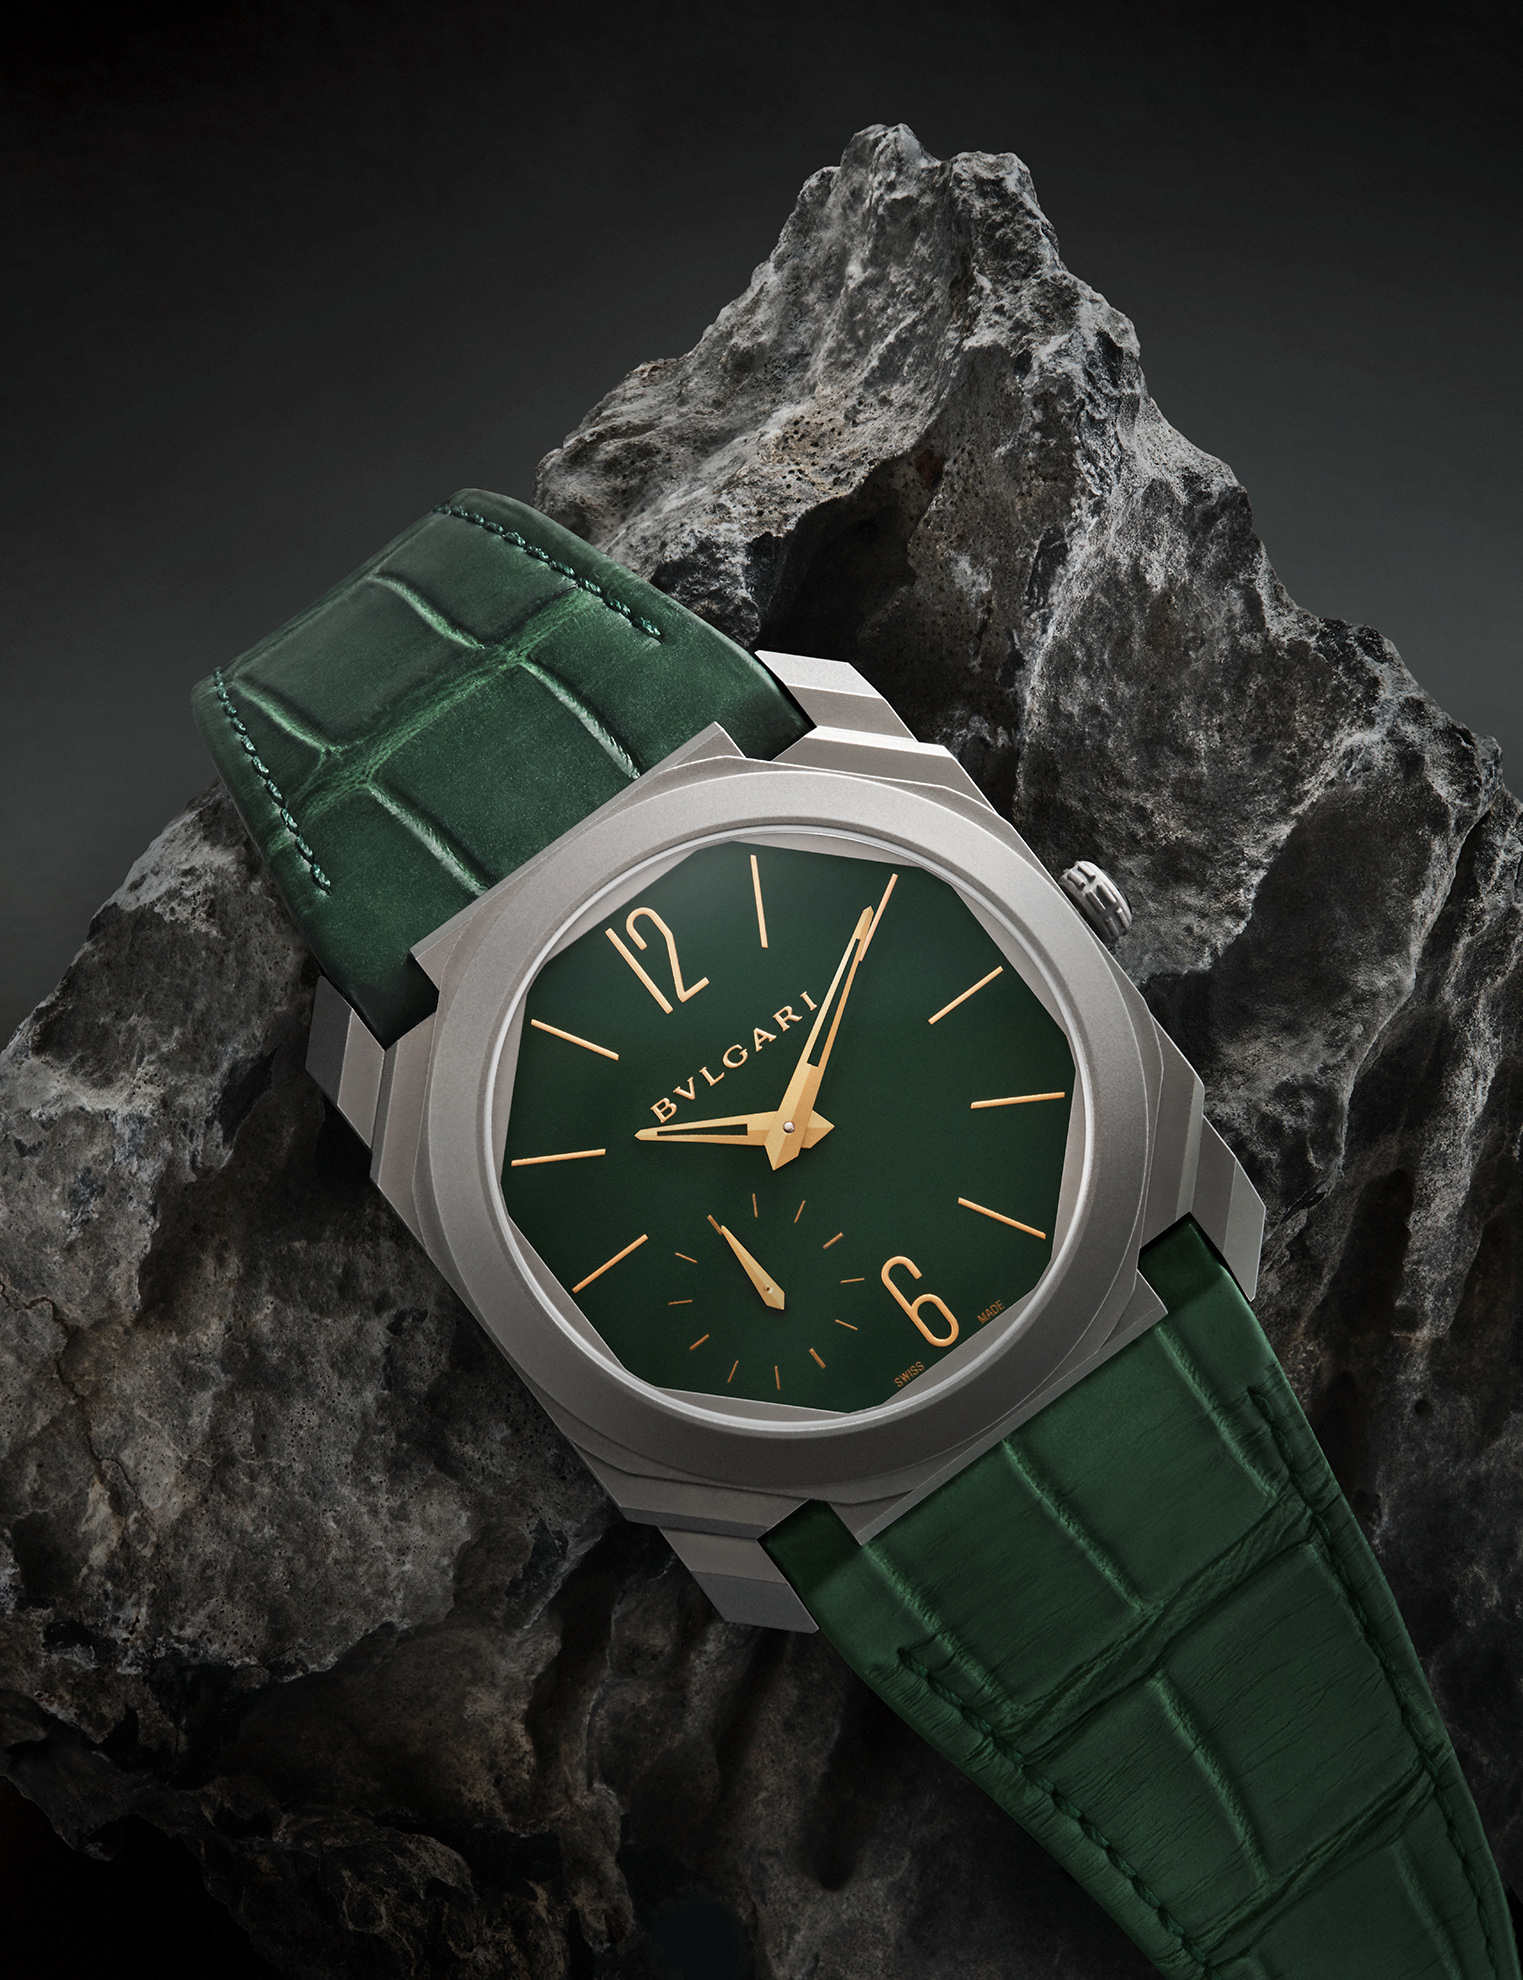 watch-photographer-london-still-life-photography-luxury-product-photographer-green-bulgari-watch.jpg